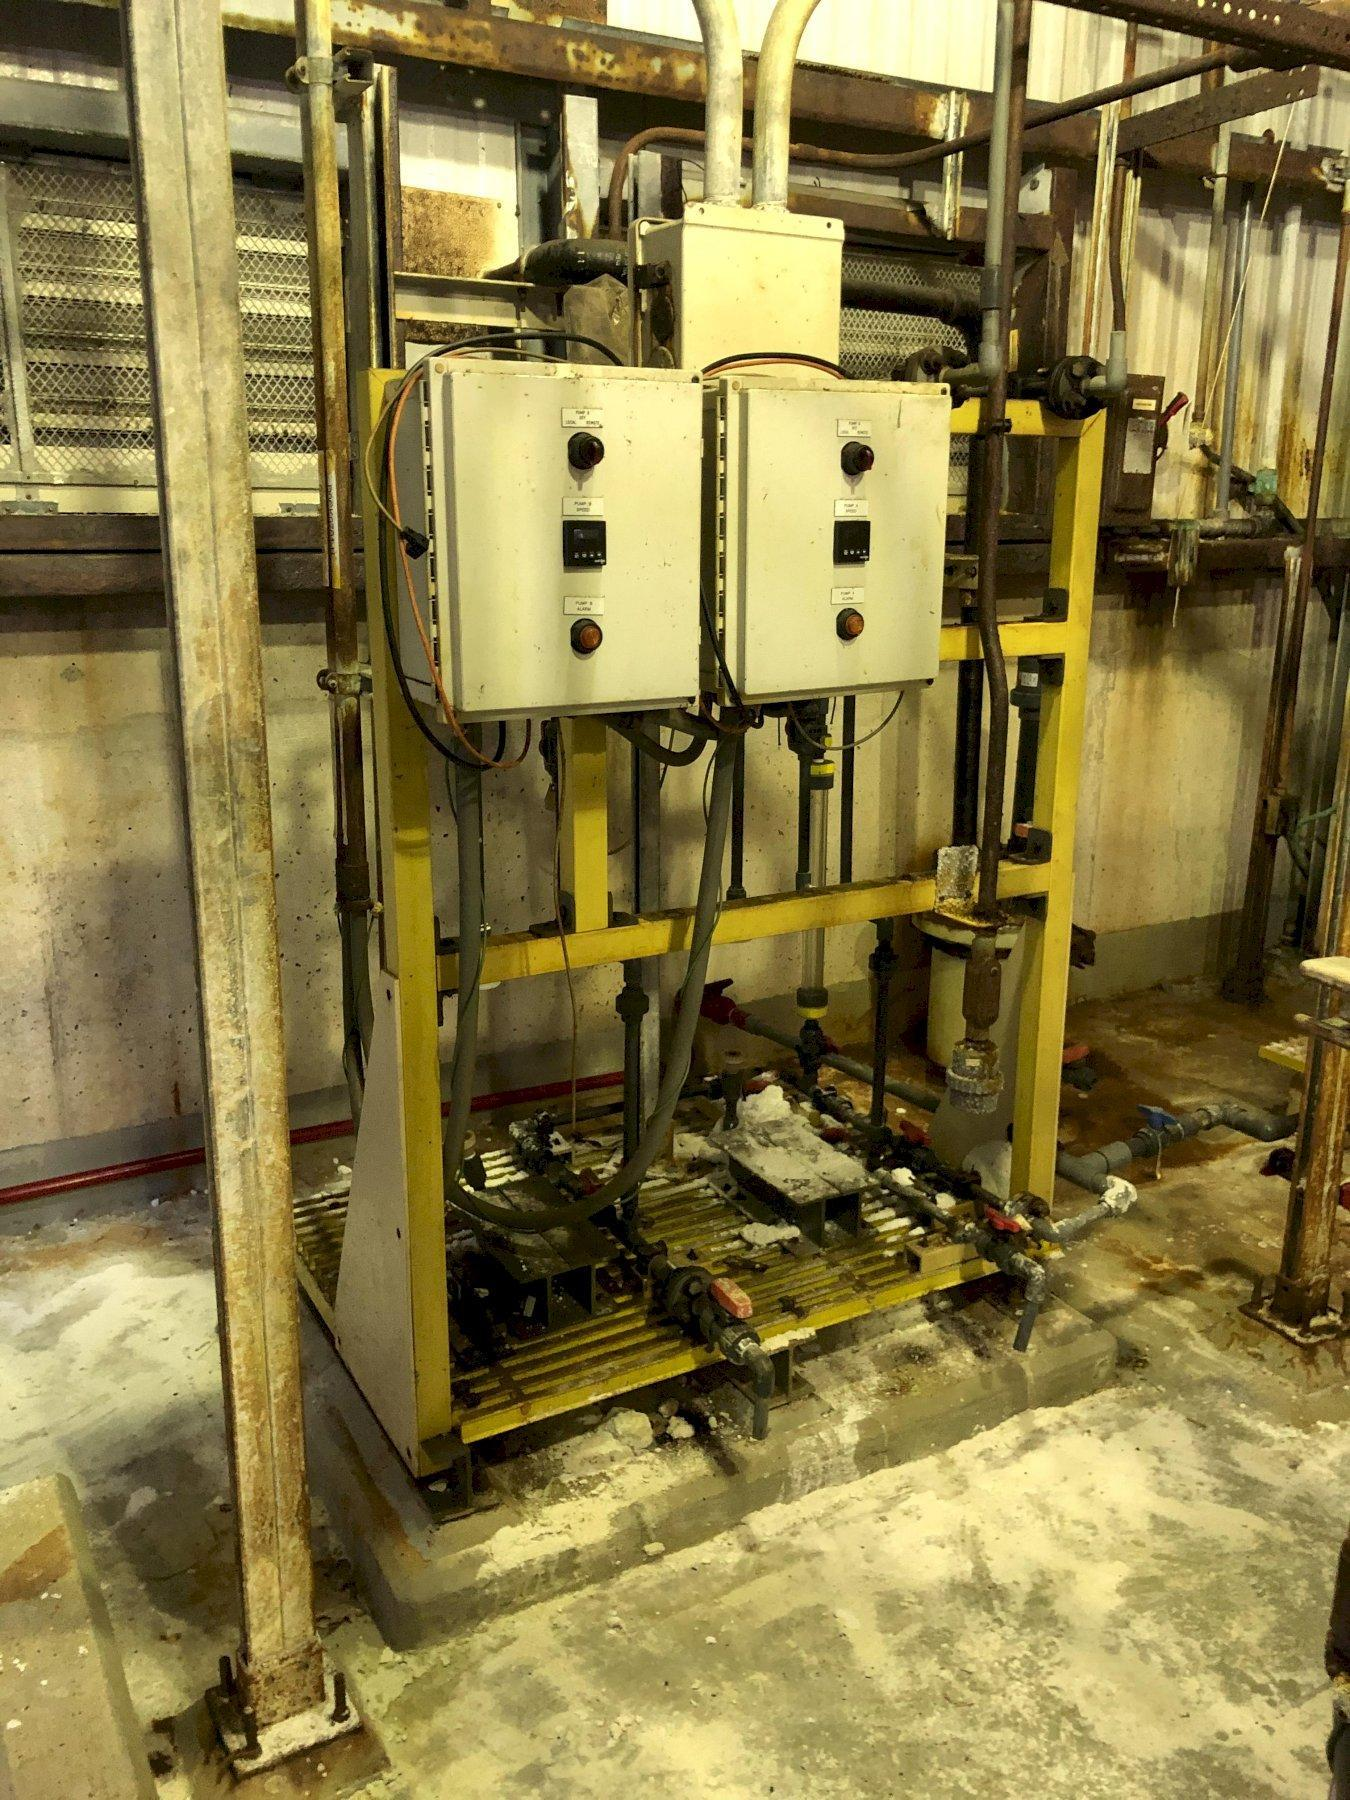 chemical pump room to include controls and a and b station with no pumps, ferric chloride station with 2- pumps, carbon source station with 2- pumps, sulfide station with 2- pumps, hydrochloric or polymer station with 2- pumps and related piping and valves in room